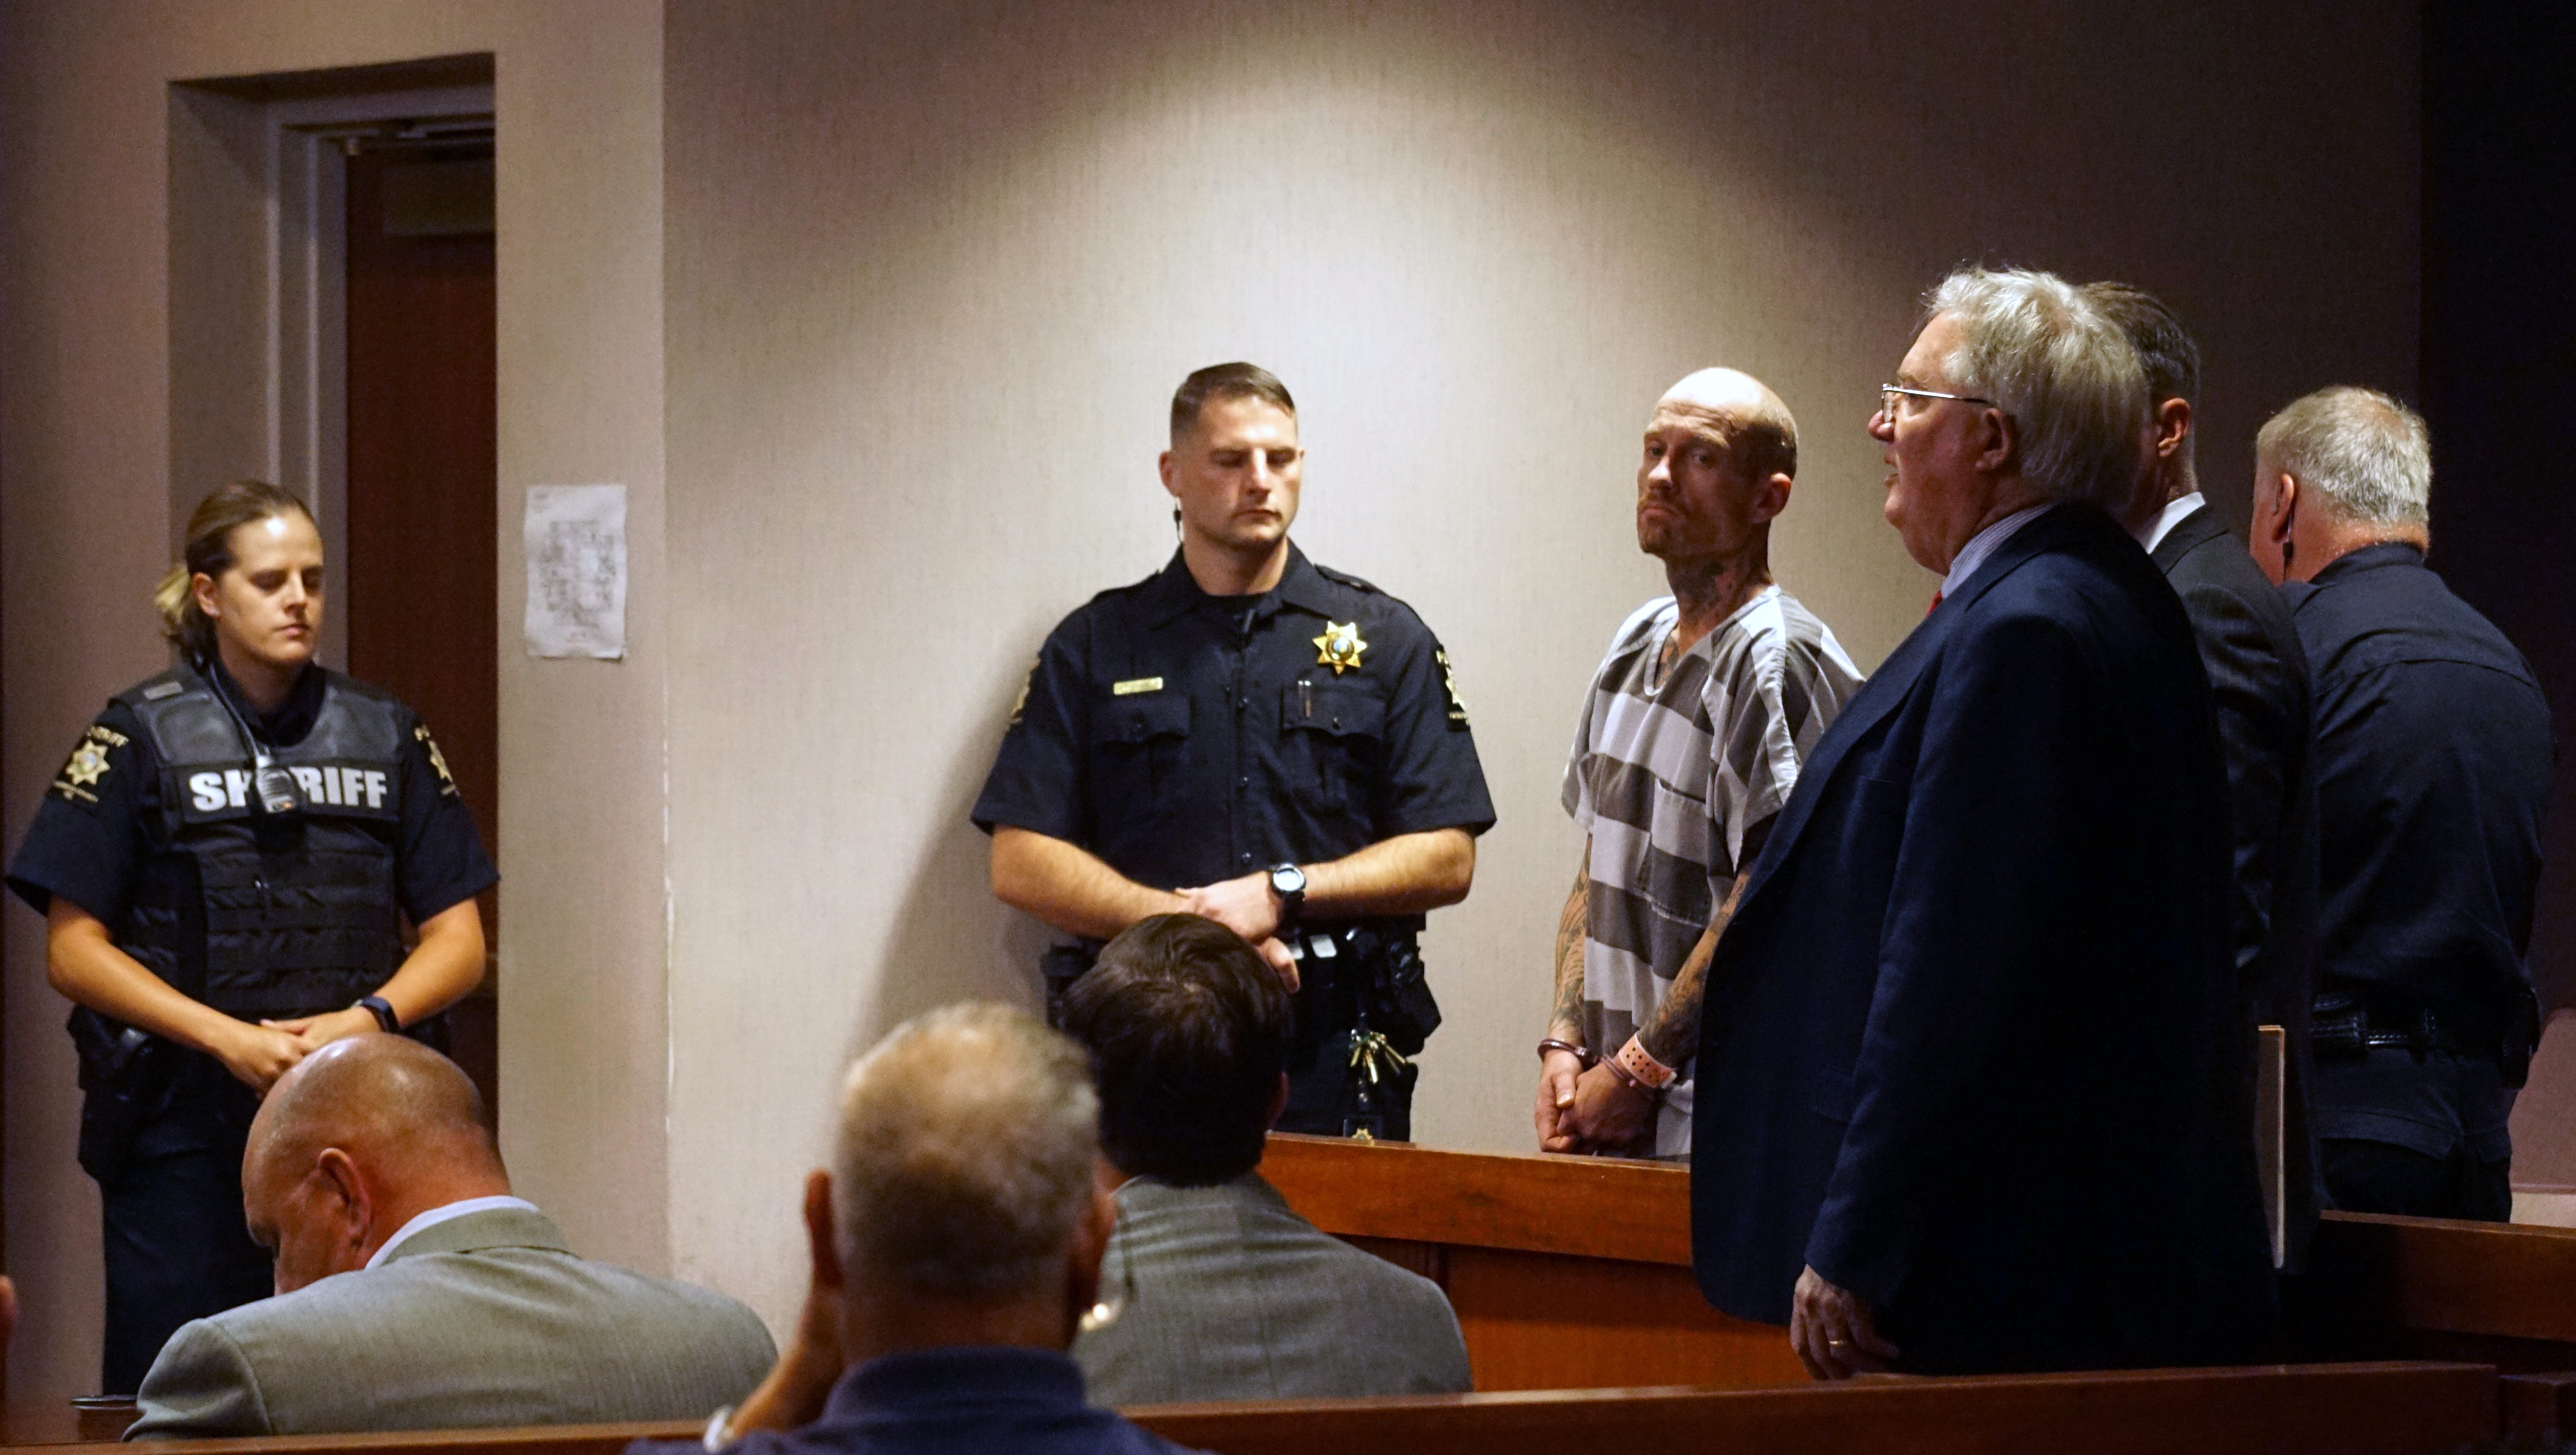 Stroupe Father Indicted For Crimes Tied To Kidnapping Death